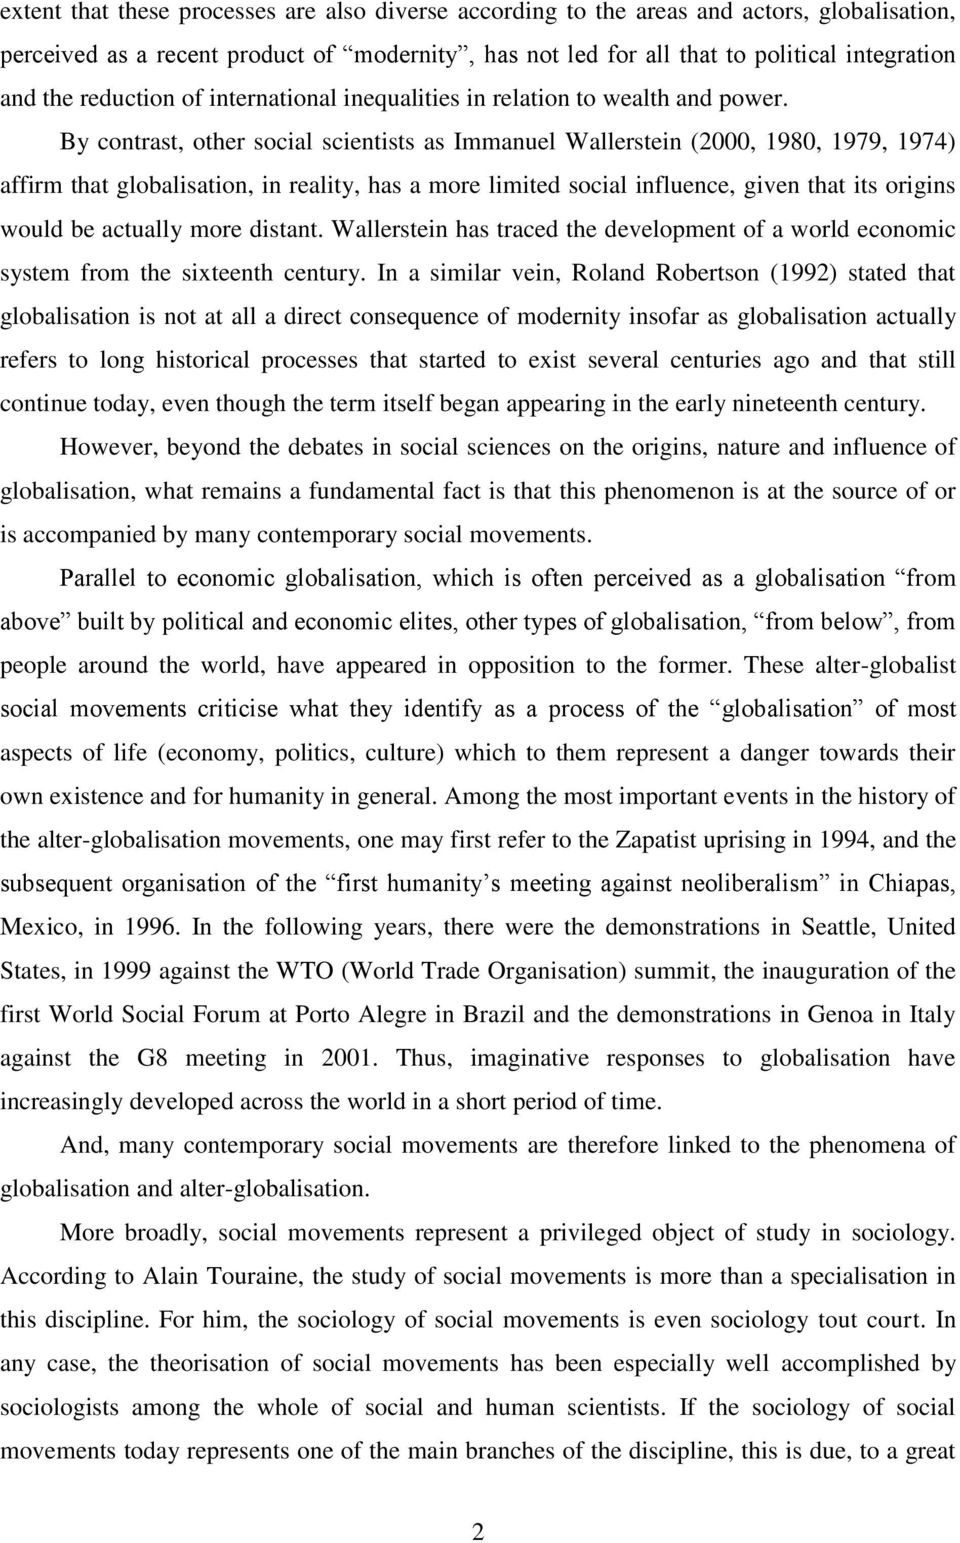 By contrast, other social scientists as Immanuel Wallerstein (2000, 1980, 1979, 1974) affirm that globalisation, in reality, has a more limited social influence, given that its origins would be